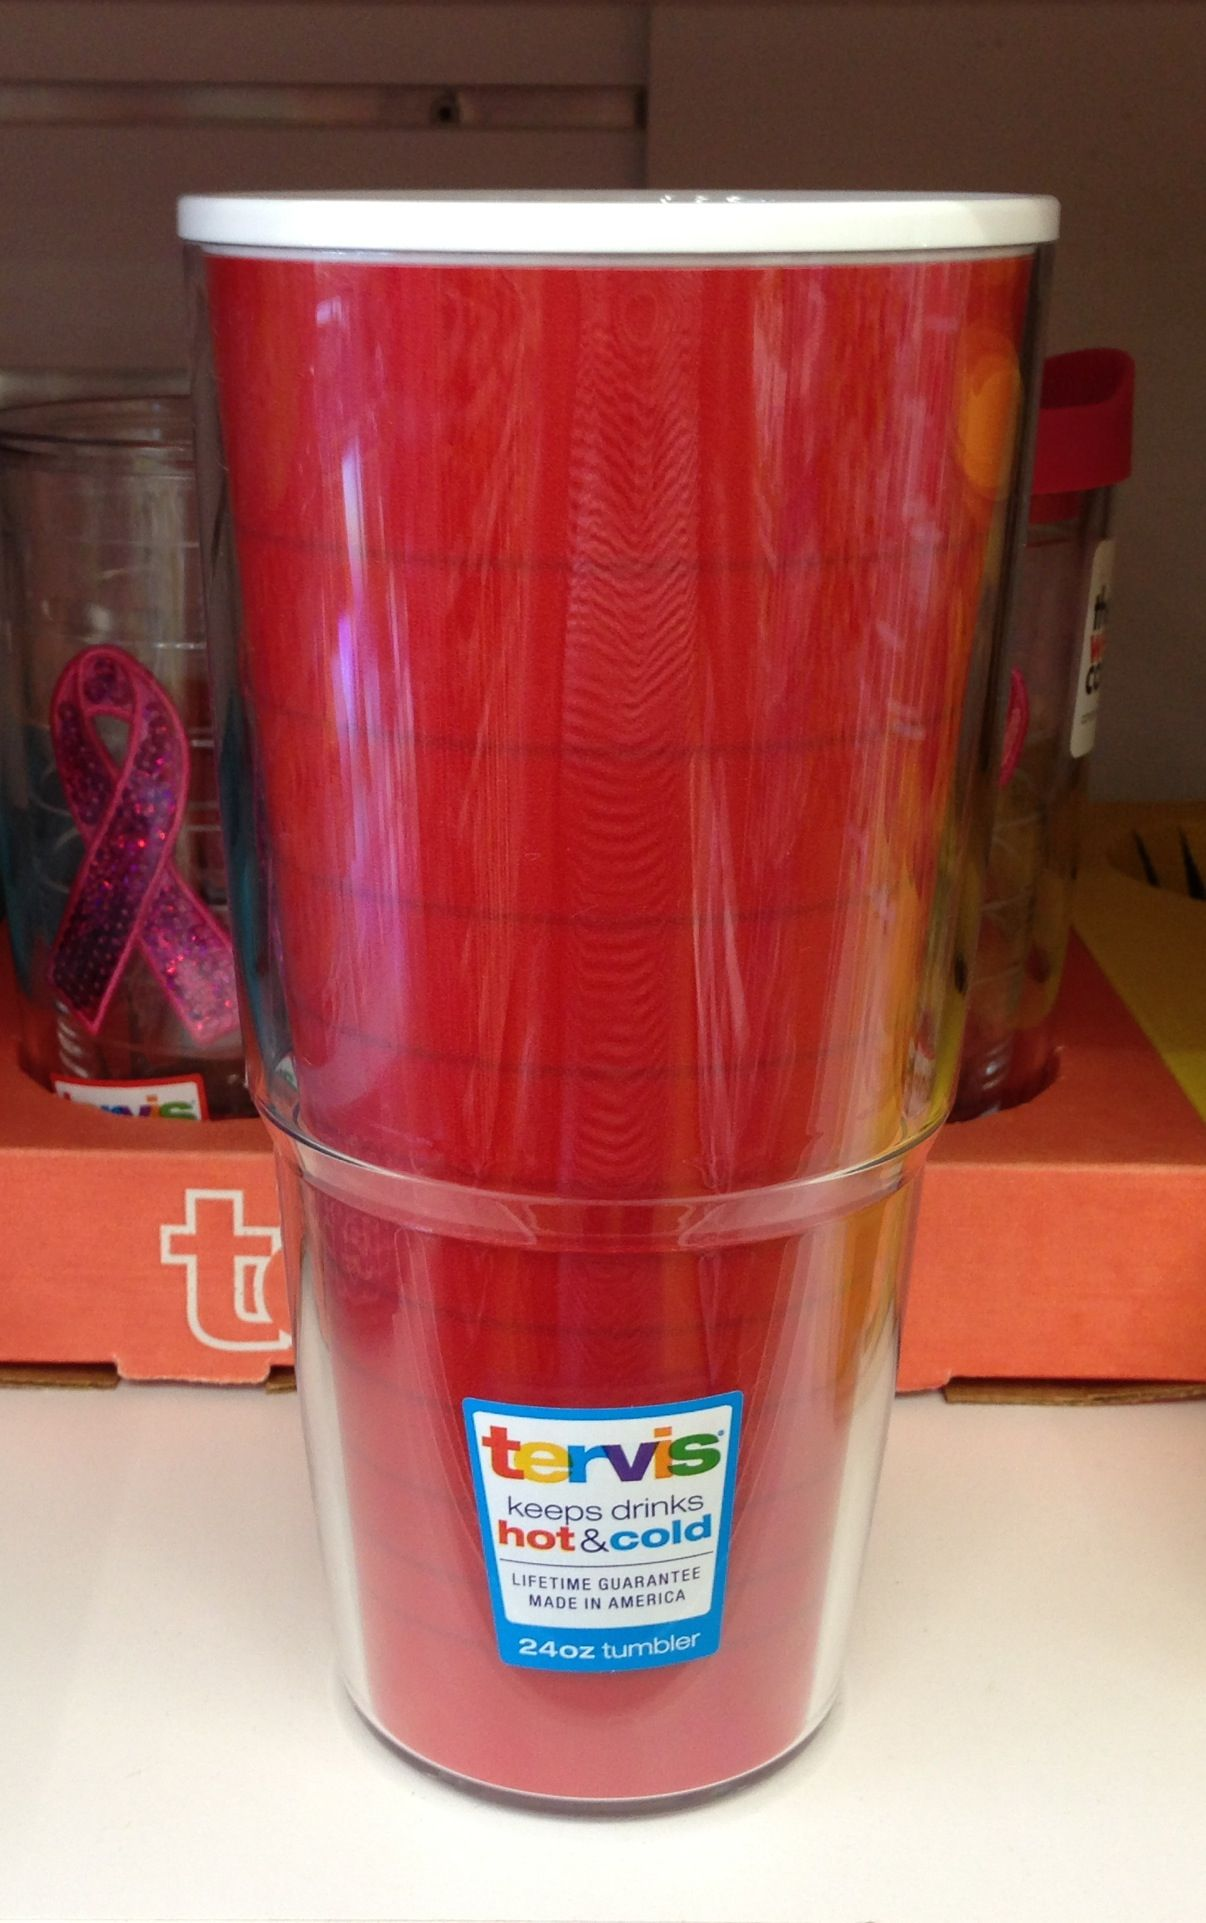 Bed bath and beyond chicago il - Red Solo Cup Tervis Tumbler Bed Bath Beyond